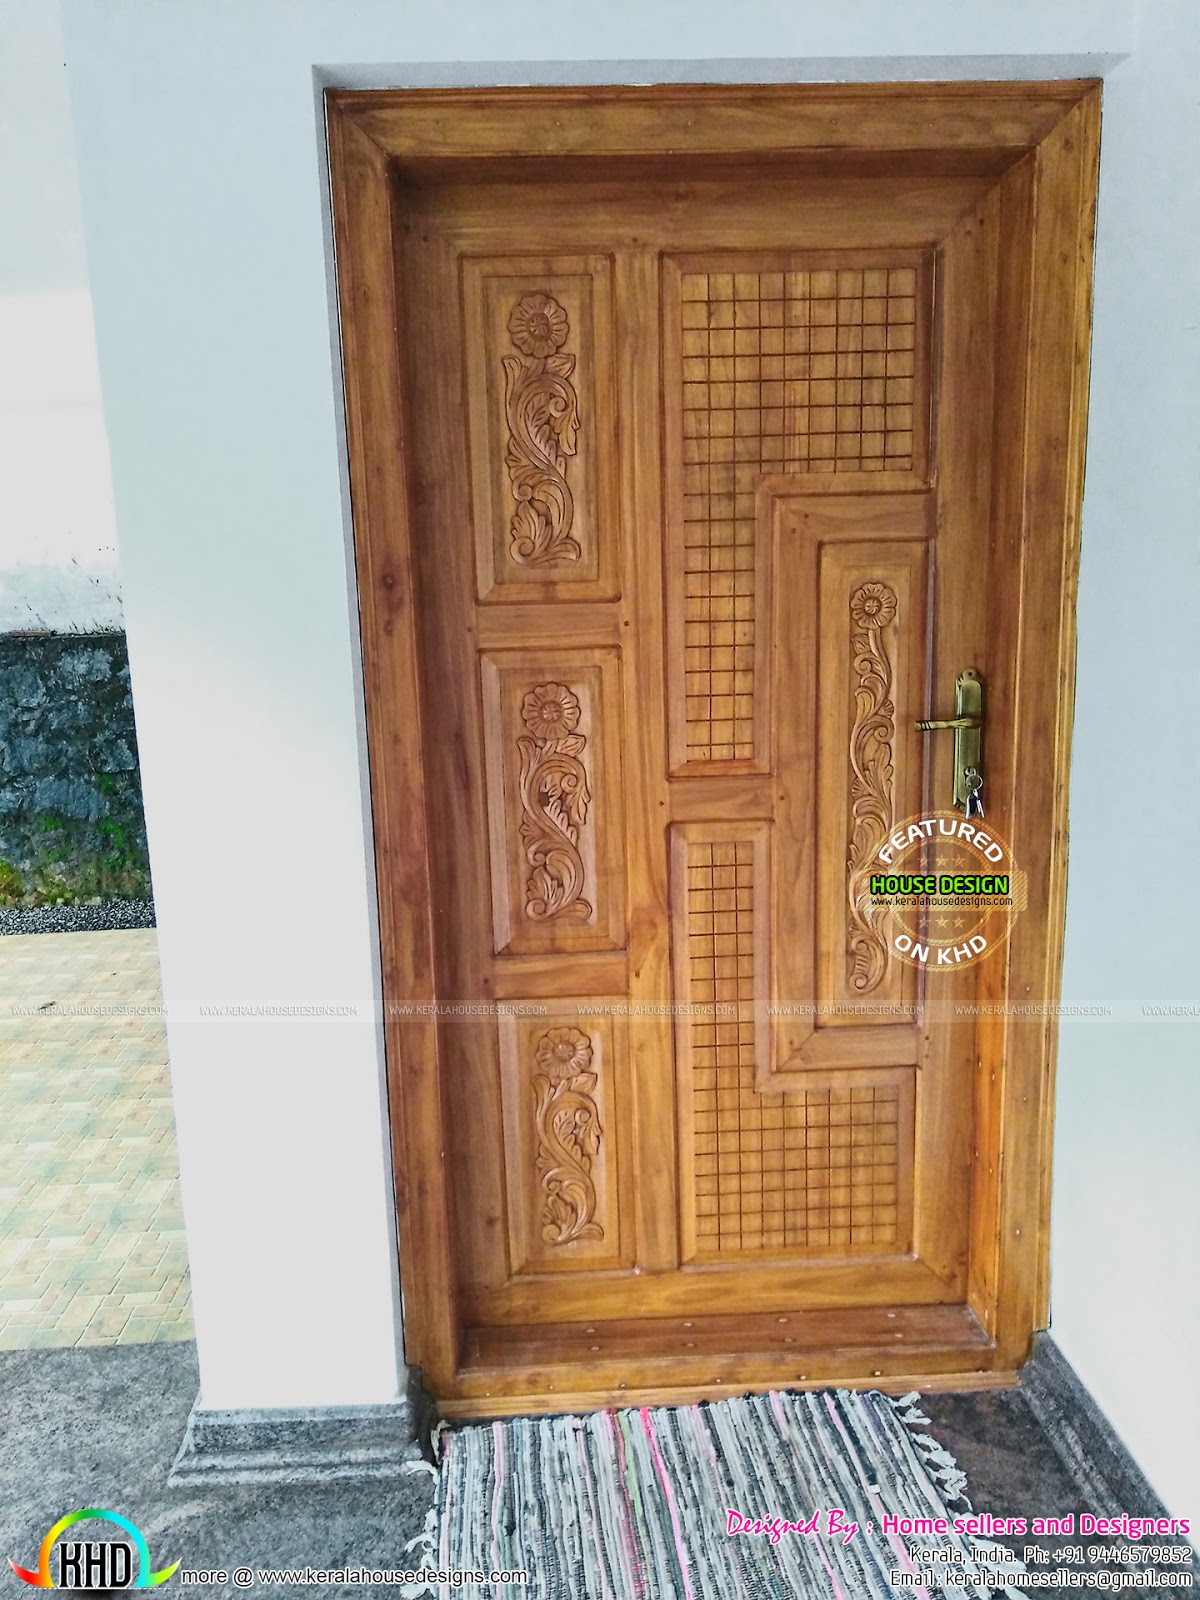 Fully furnished home for sale - Kerala home design and ...